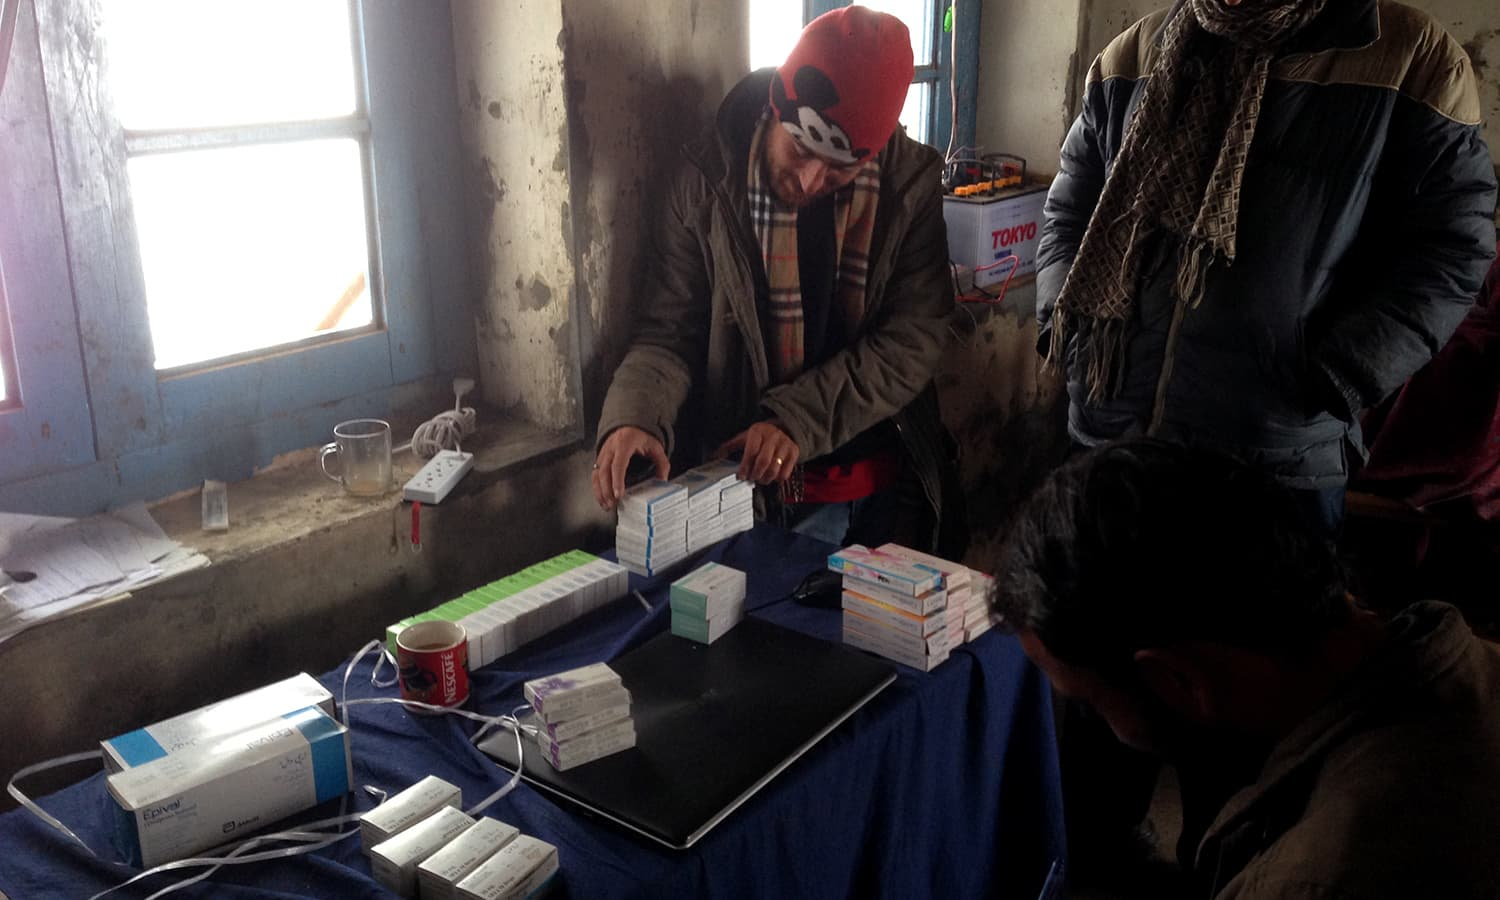 Even though basic medicines are available in the village, patients have to travel to a nearby village for more advanced medical facilities.